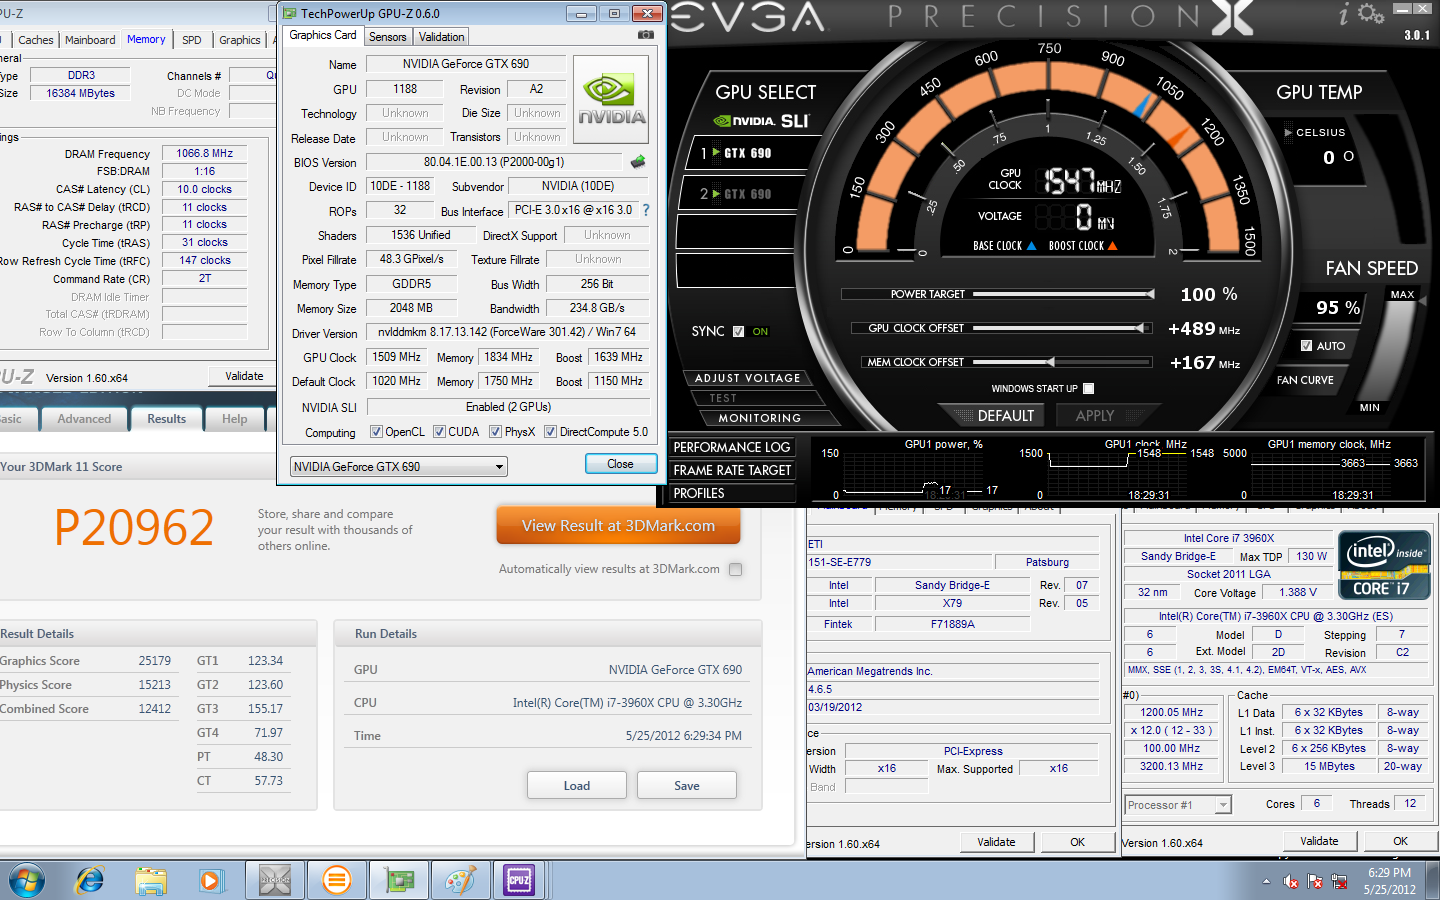 EVGA GeForce GTX 690 3dmark 11